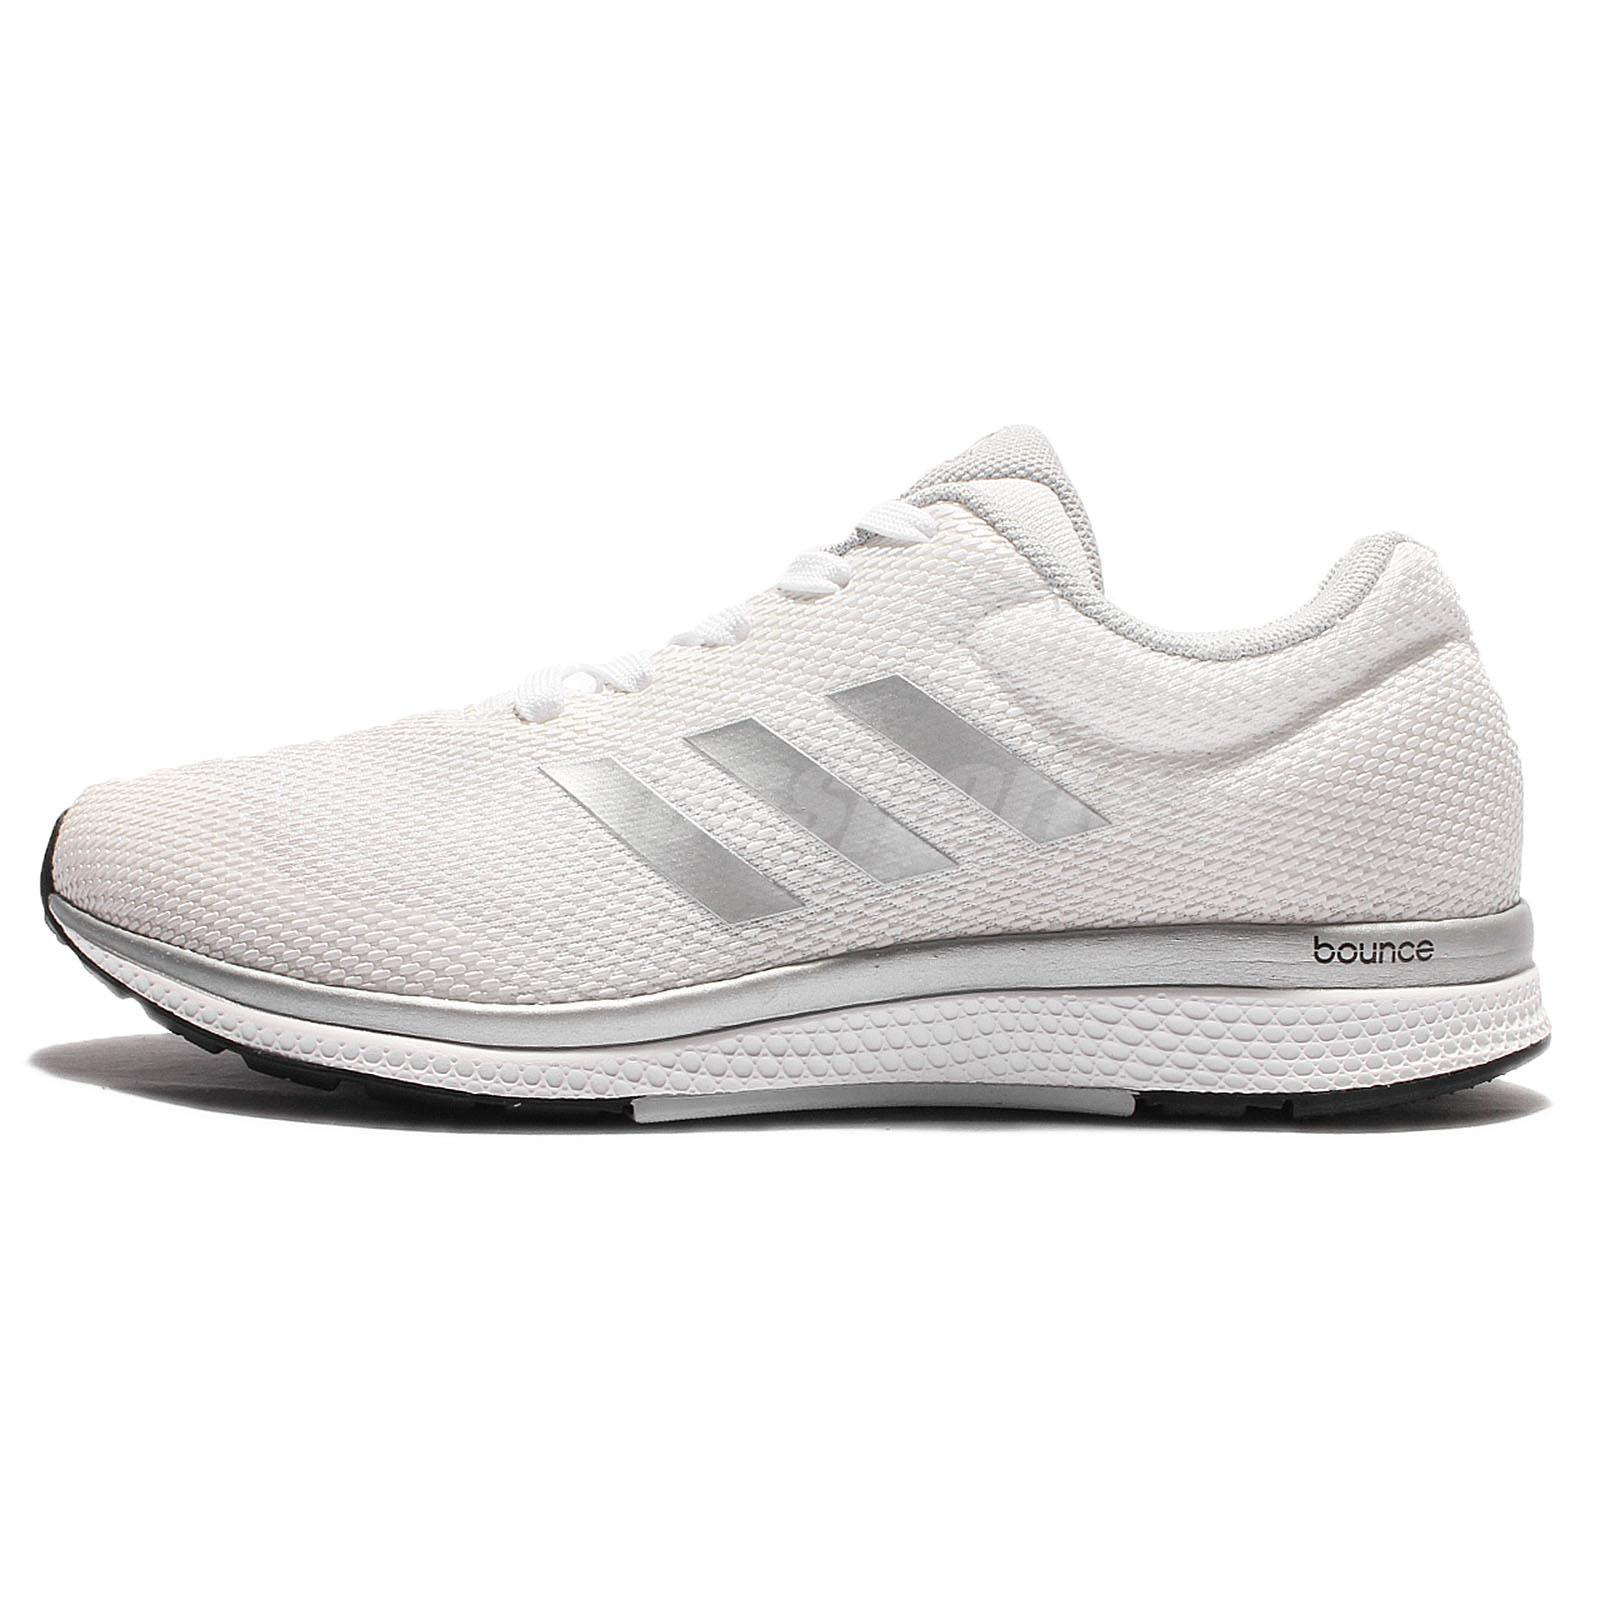 8991b500b adidas Mana Bounce 2 W Aramis White Silver Womens Running Shoes B39027